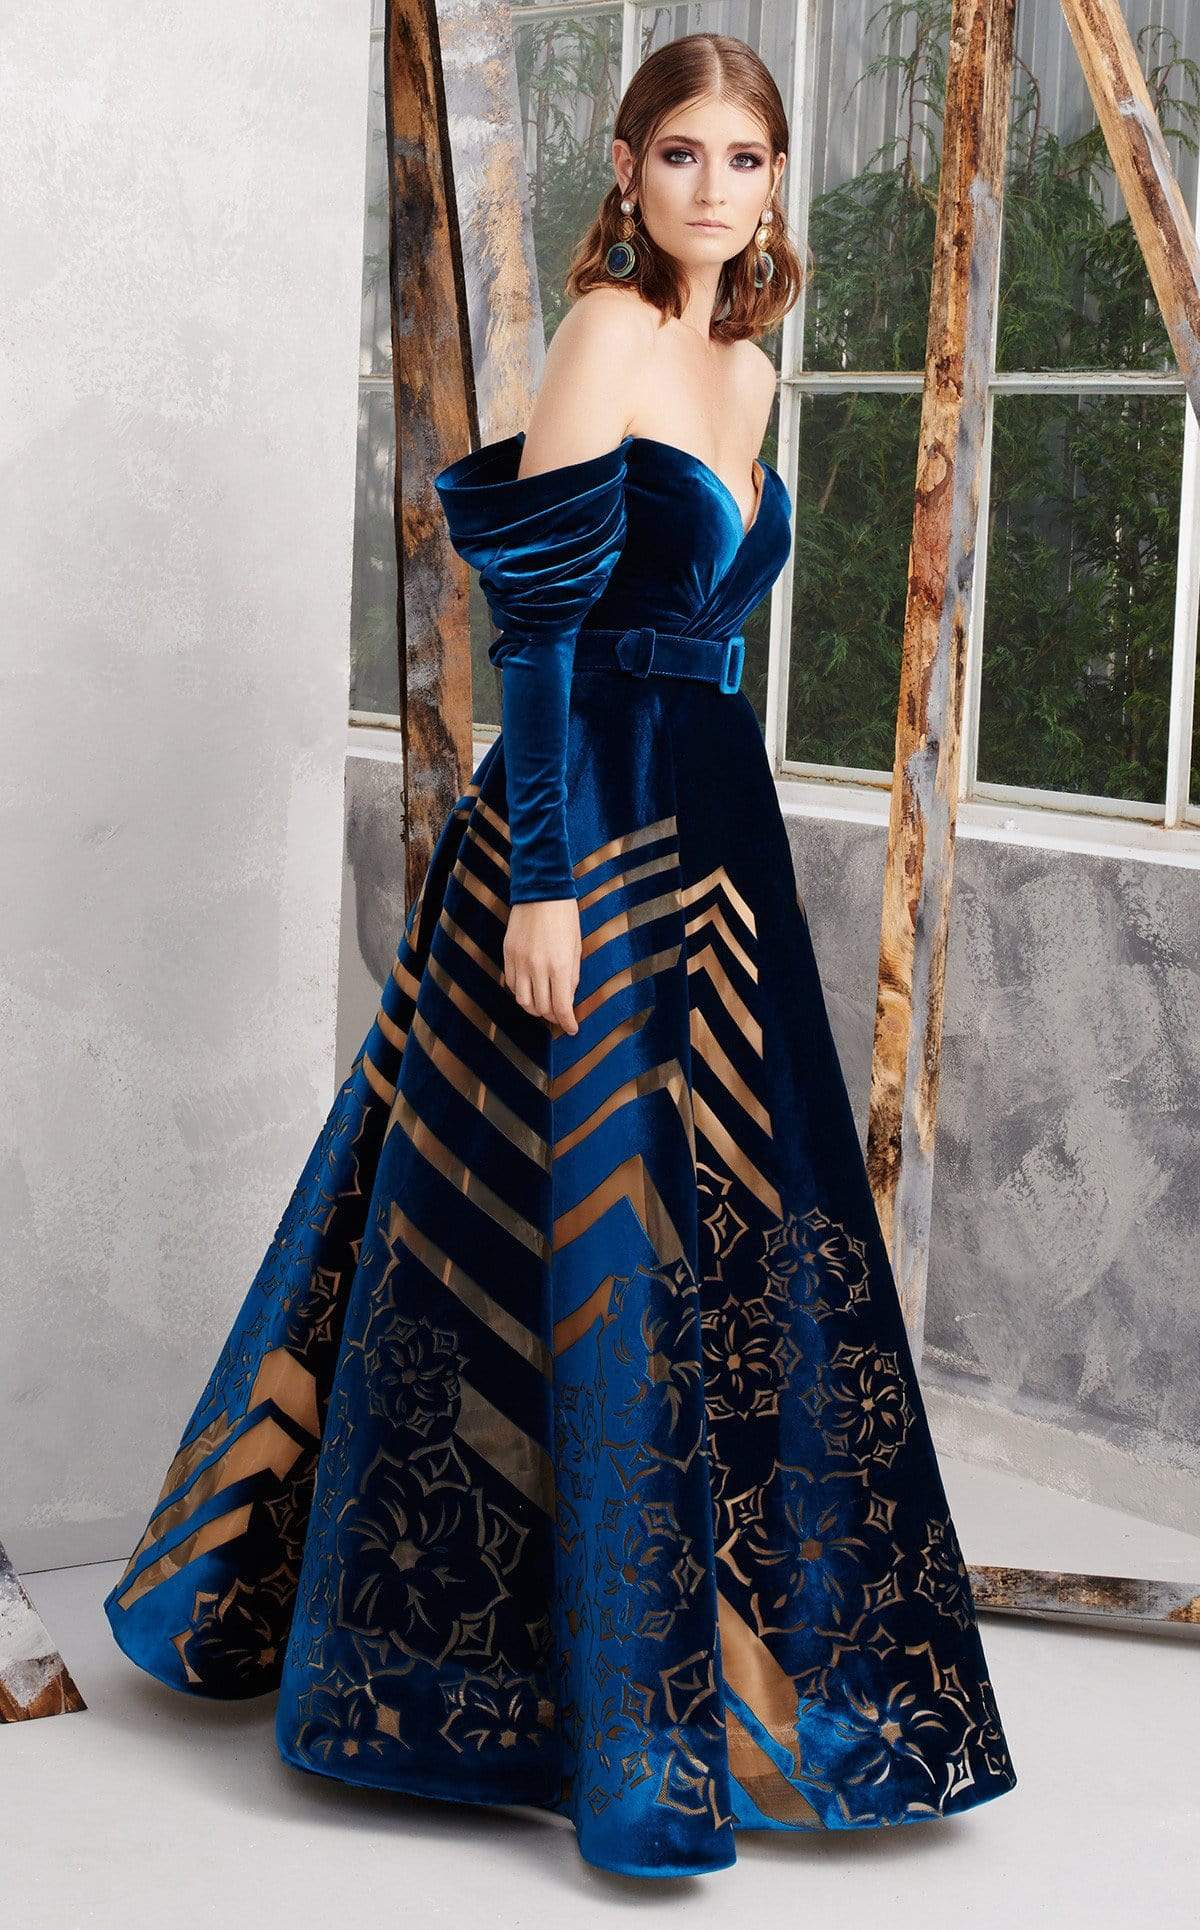 MNM COUTURE - N0279 Draping Off Shoulder Illusion Cutout Gown In Blue